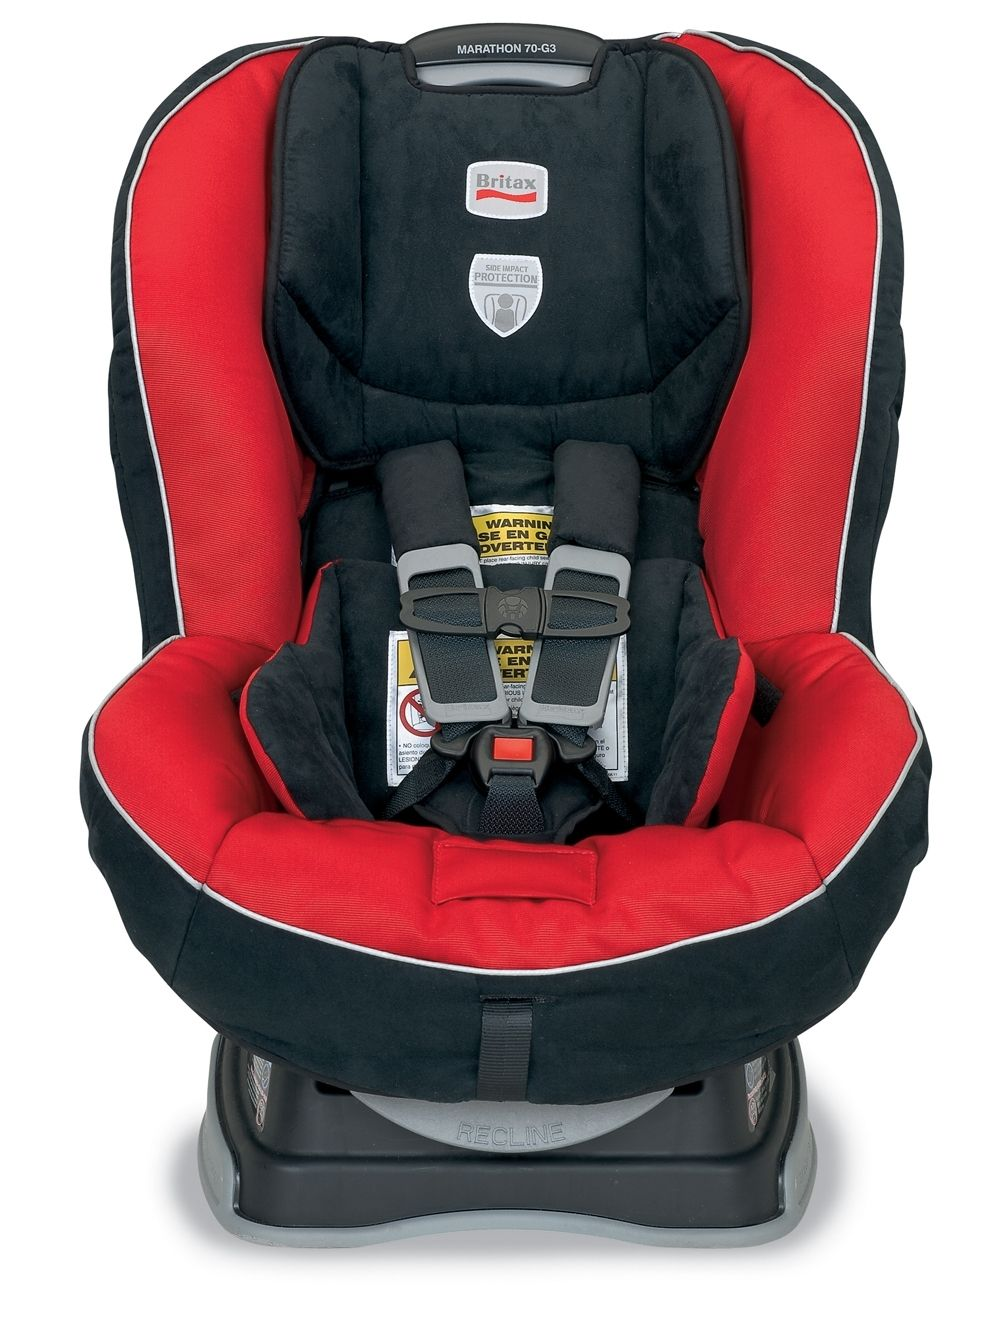 Britax marathon 70 g3 convertible car seat onyx review and sale save 30